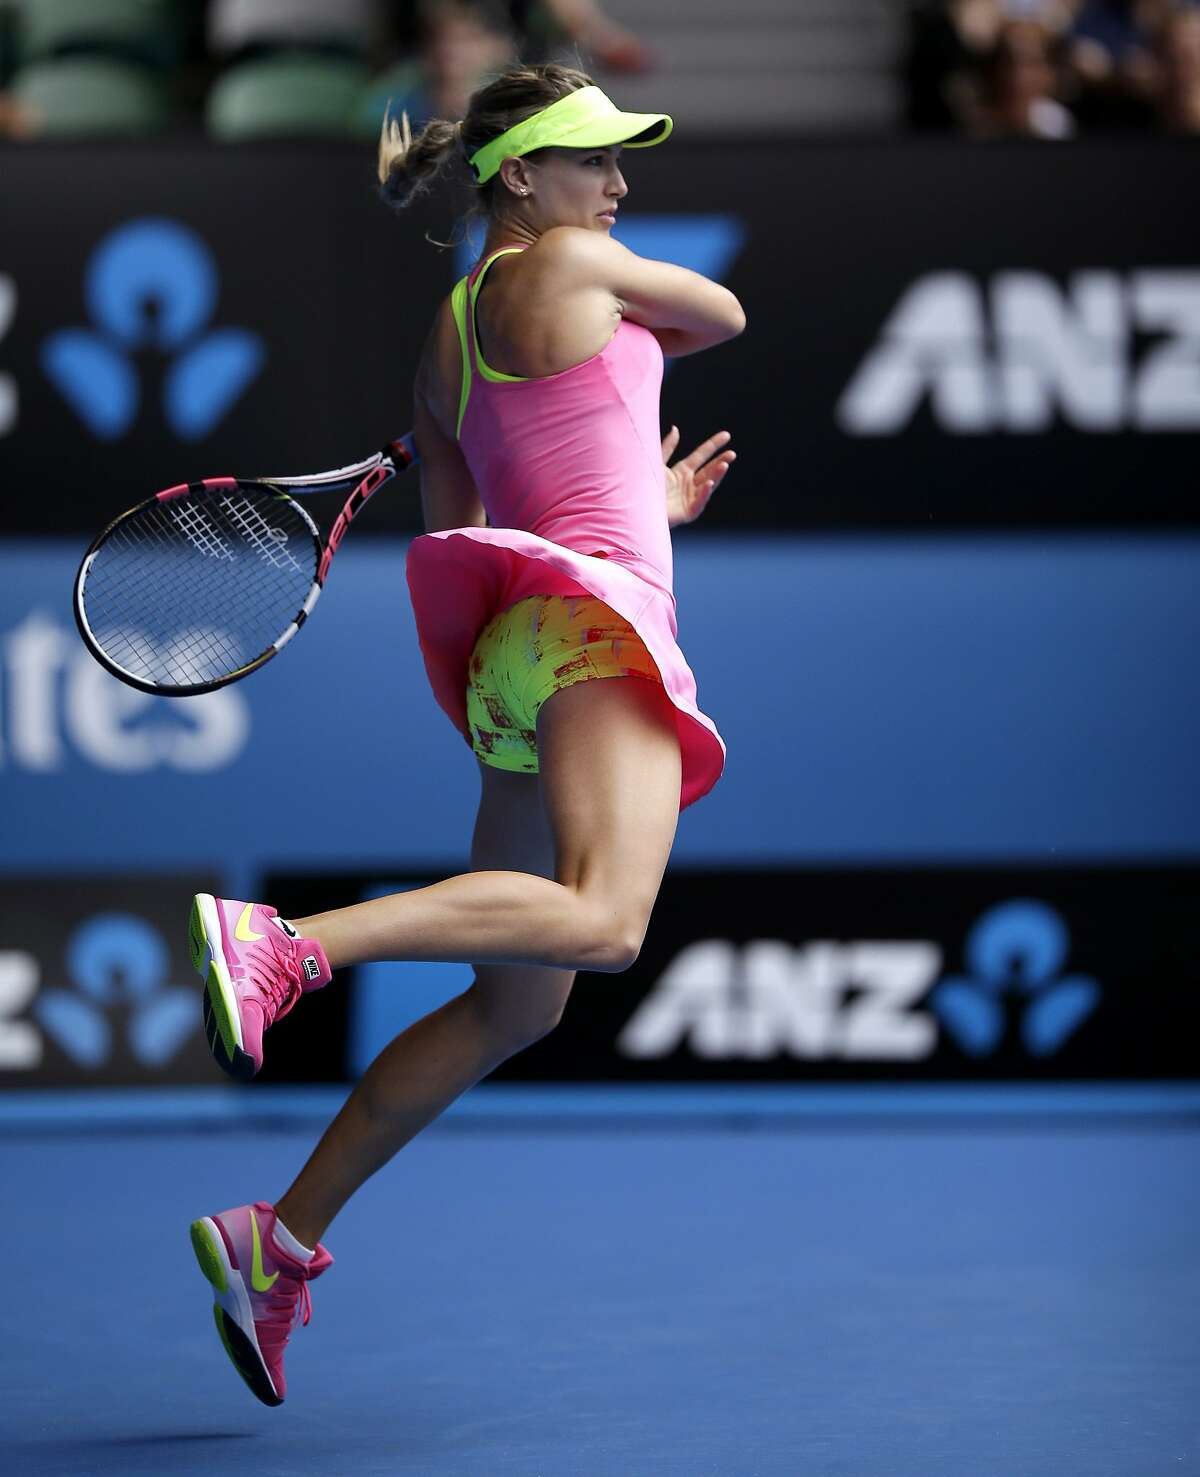 CANADIAN CLUB: Eugenie Bouchard slams a shot to Maria Sharapova during their quarterfinal match at the Australian Open in Melbourne. Unfortunately for the young Canadian, Sharapova won in straight sets.